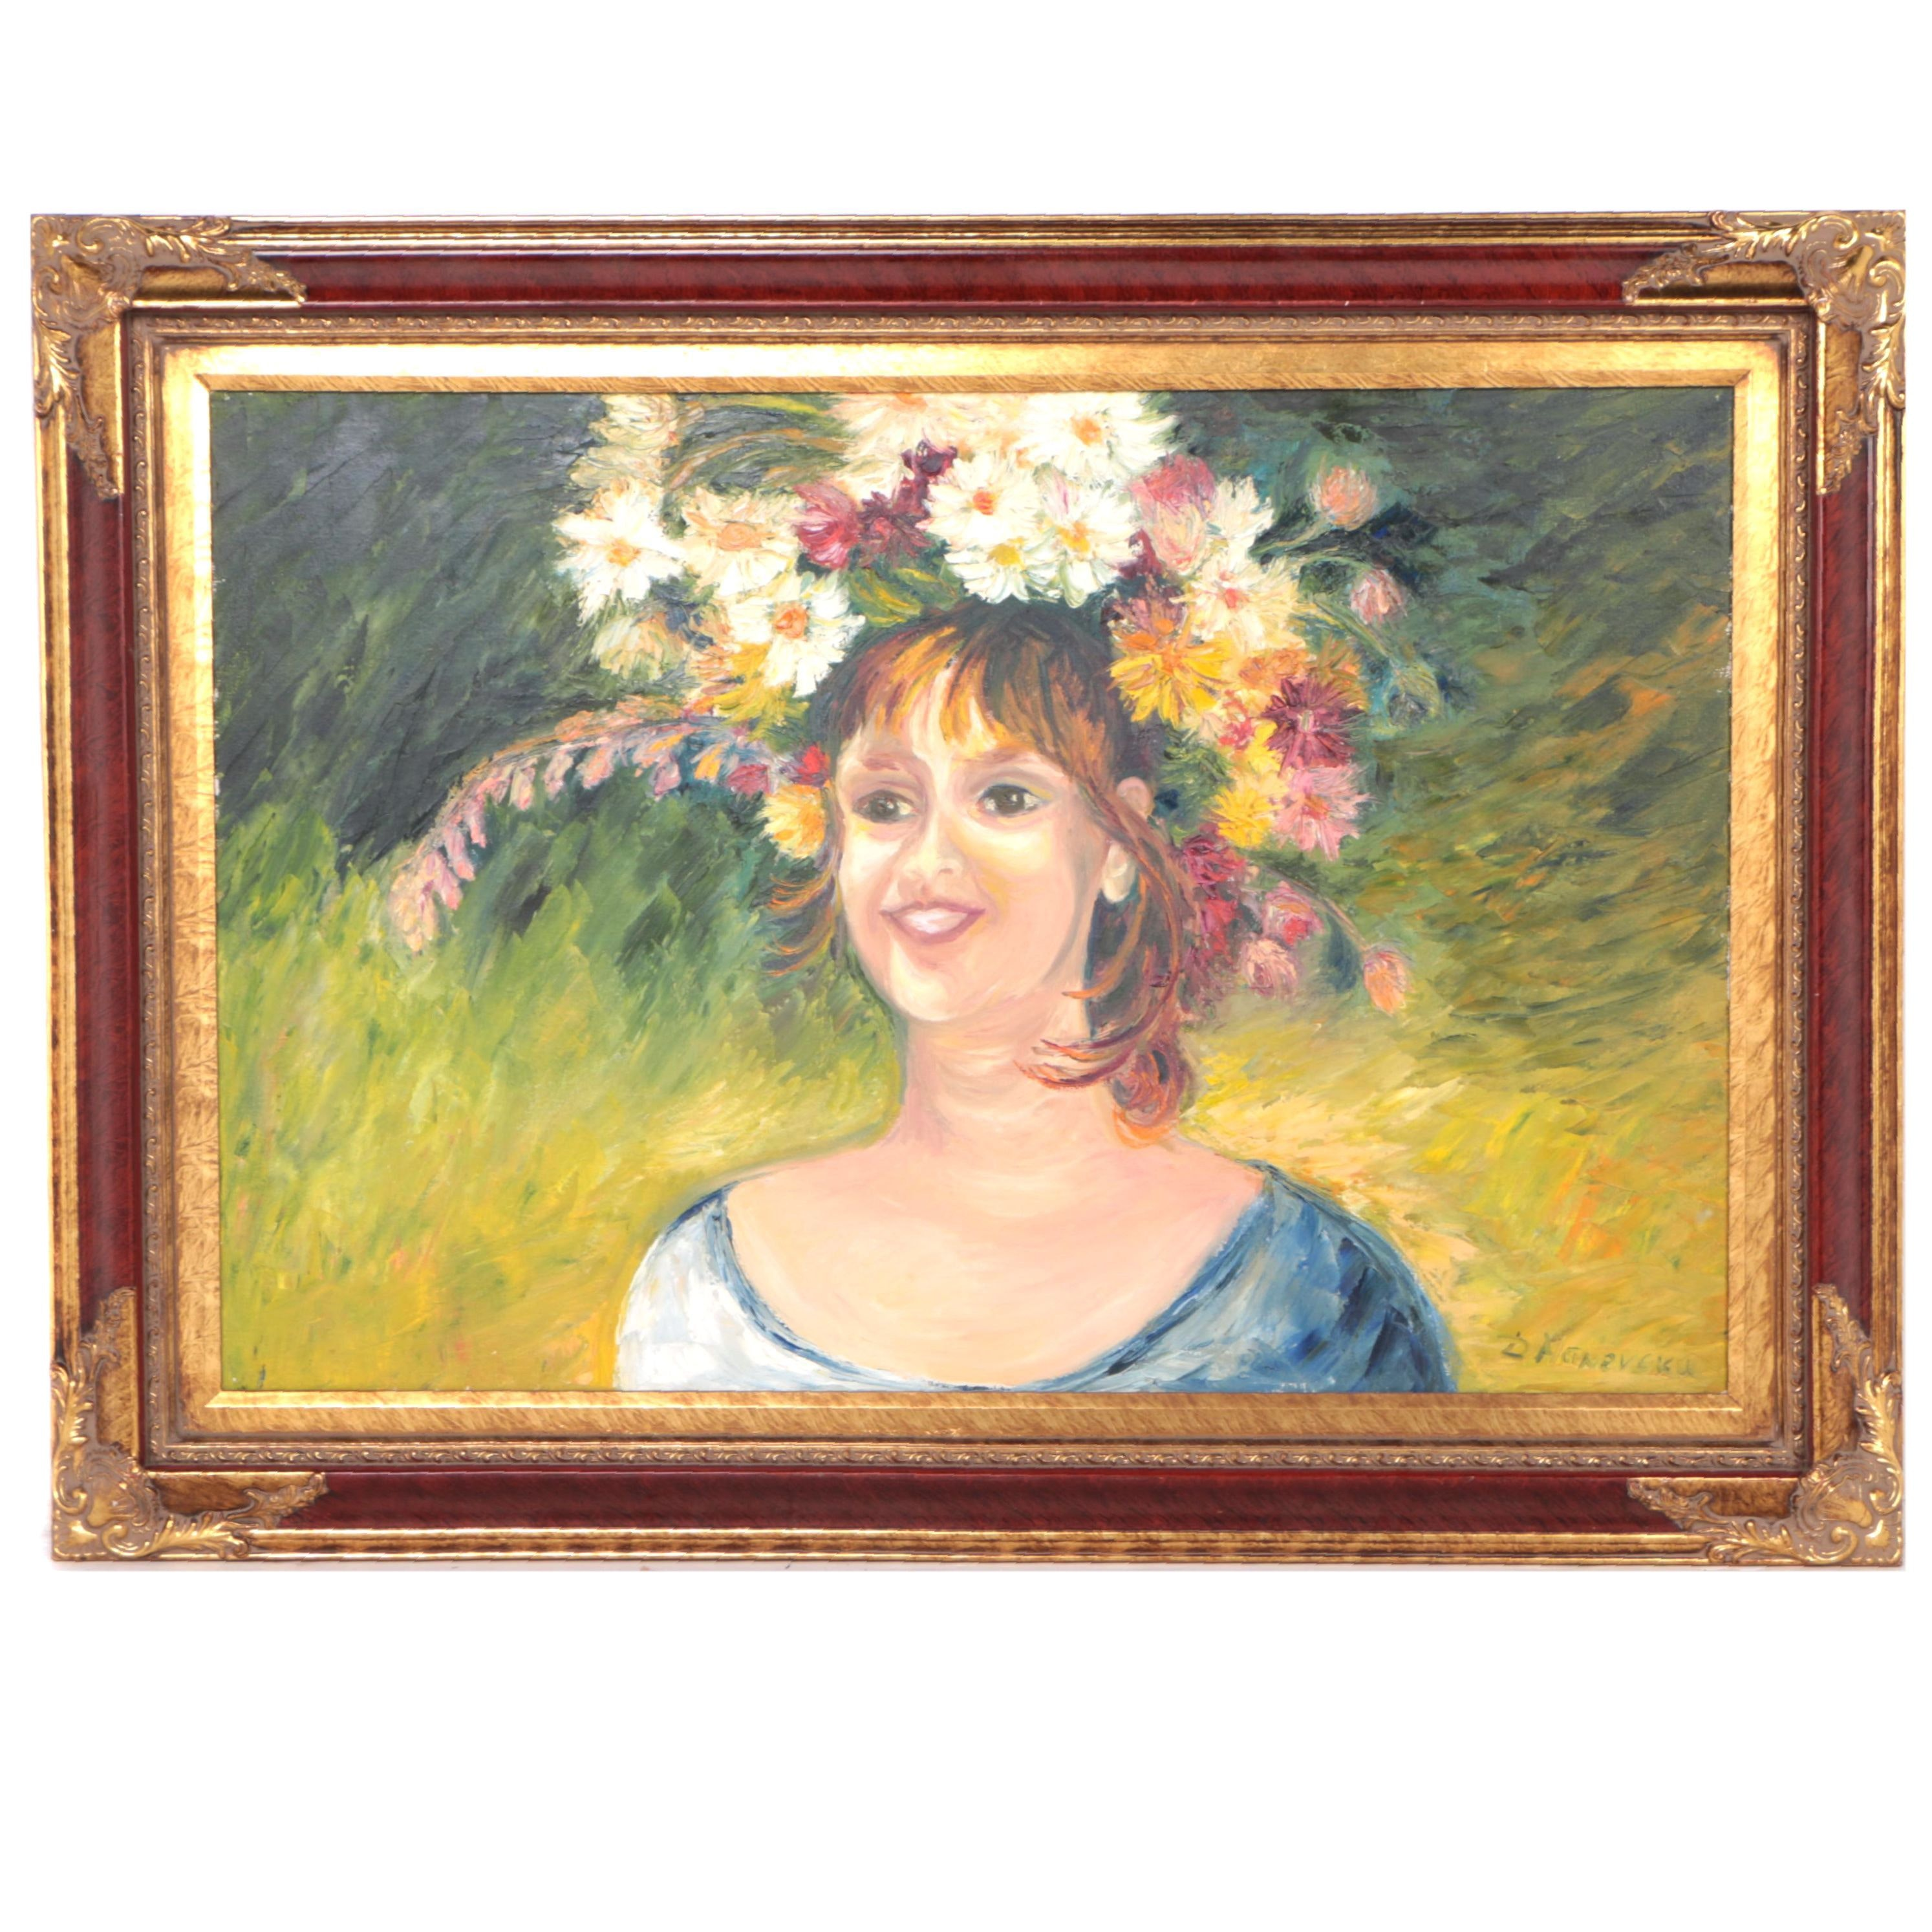 Oil Painting on Canvas of Woman with Floral Crown